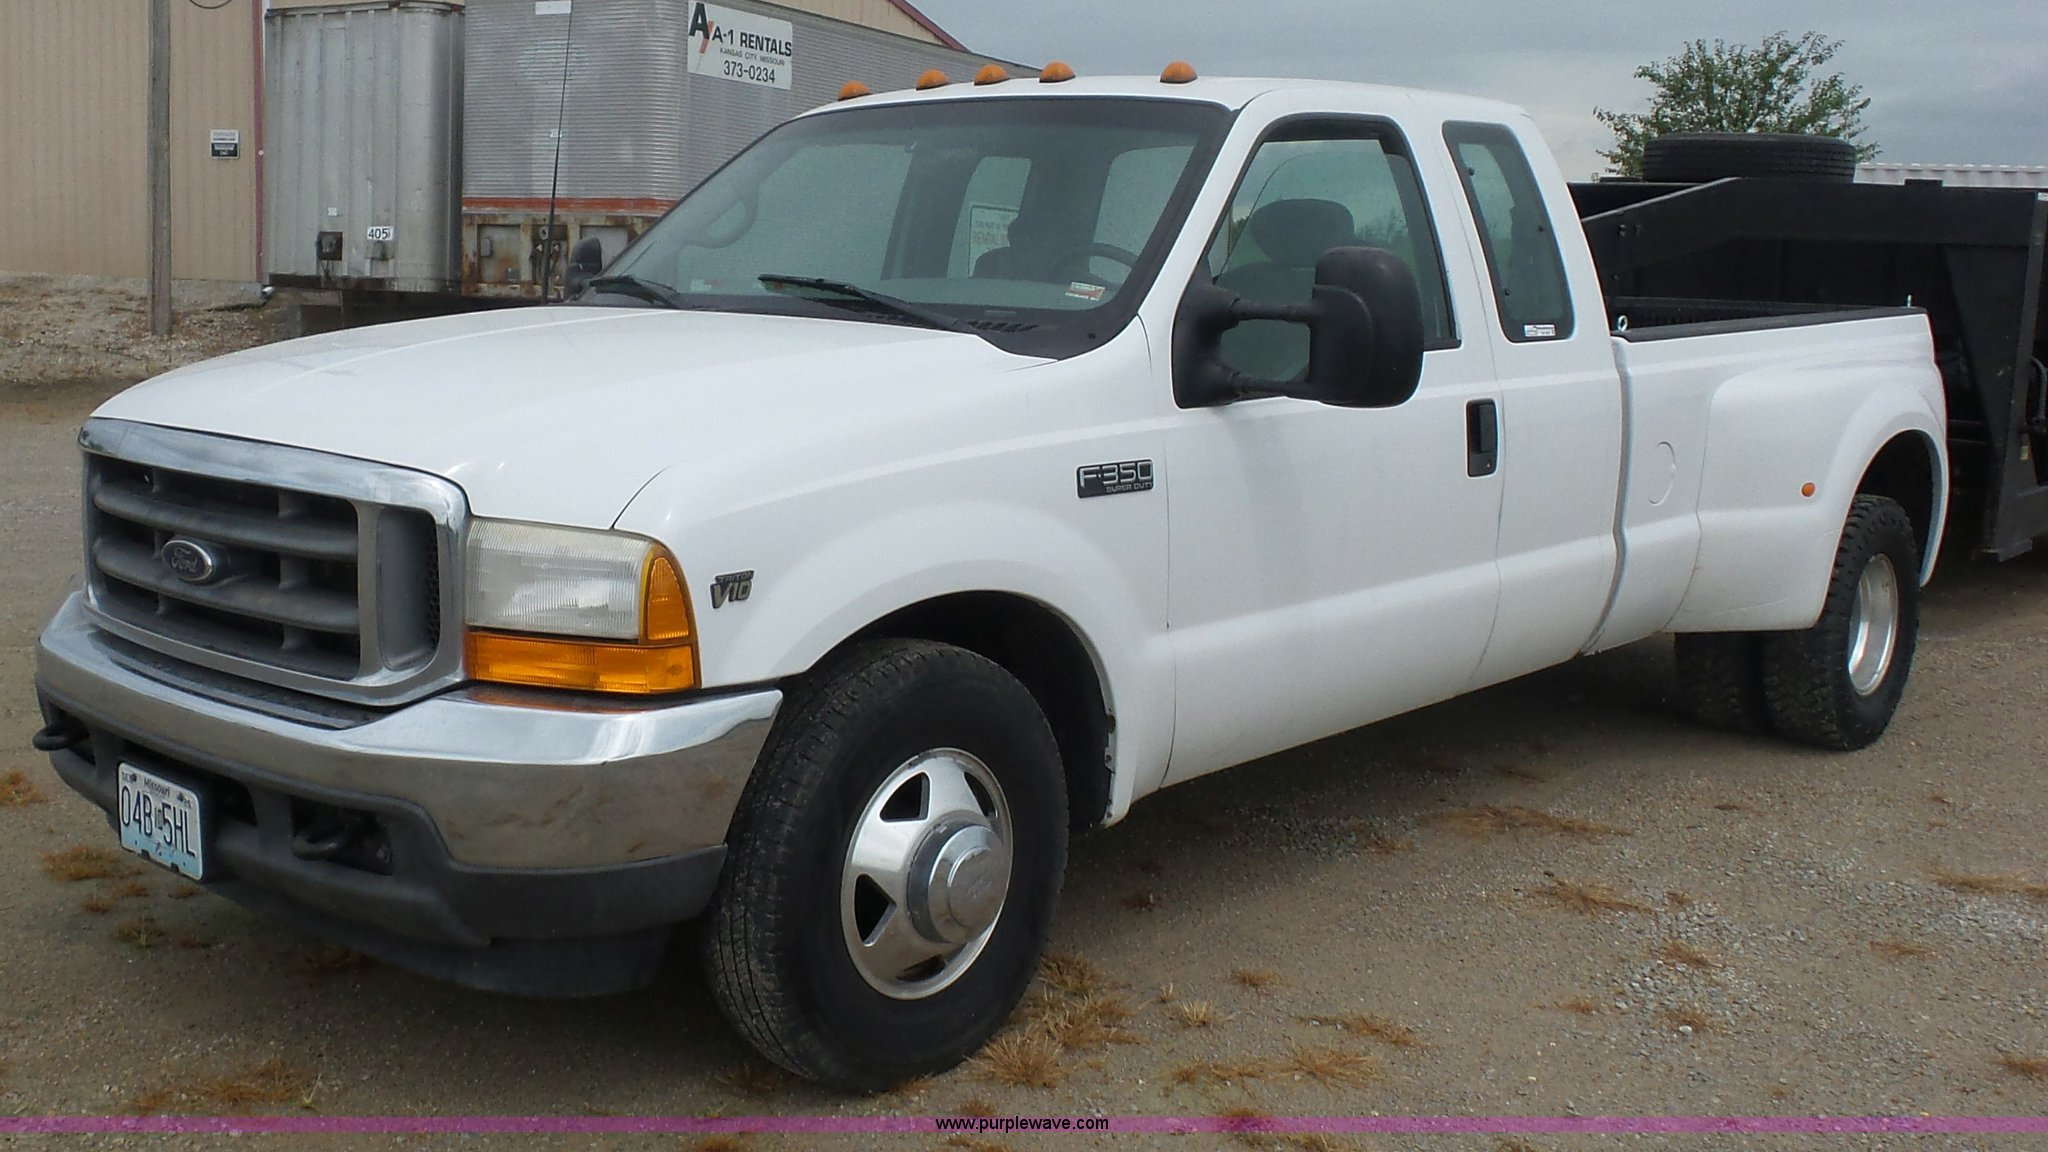 Bx9260 image for item bx9260 2001 ford f350 super duty